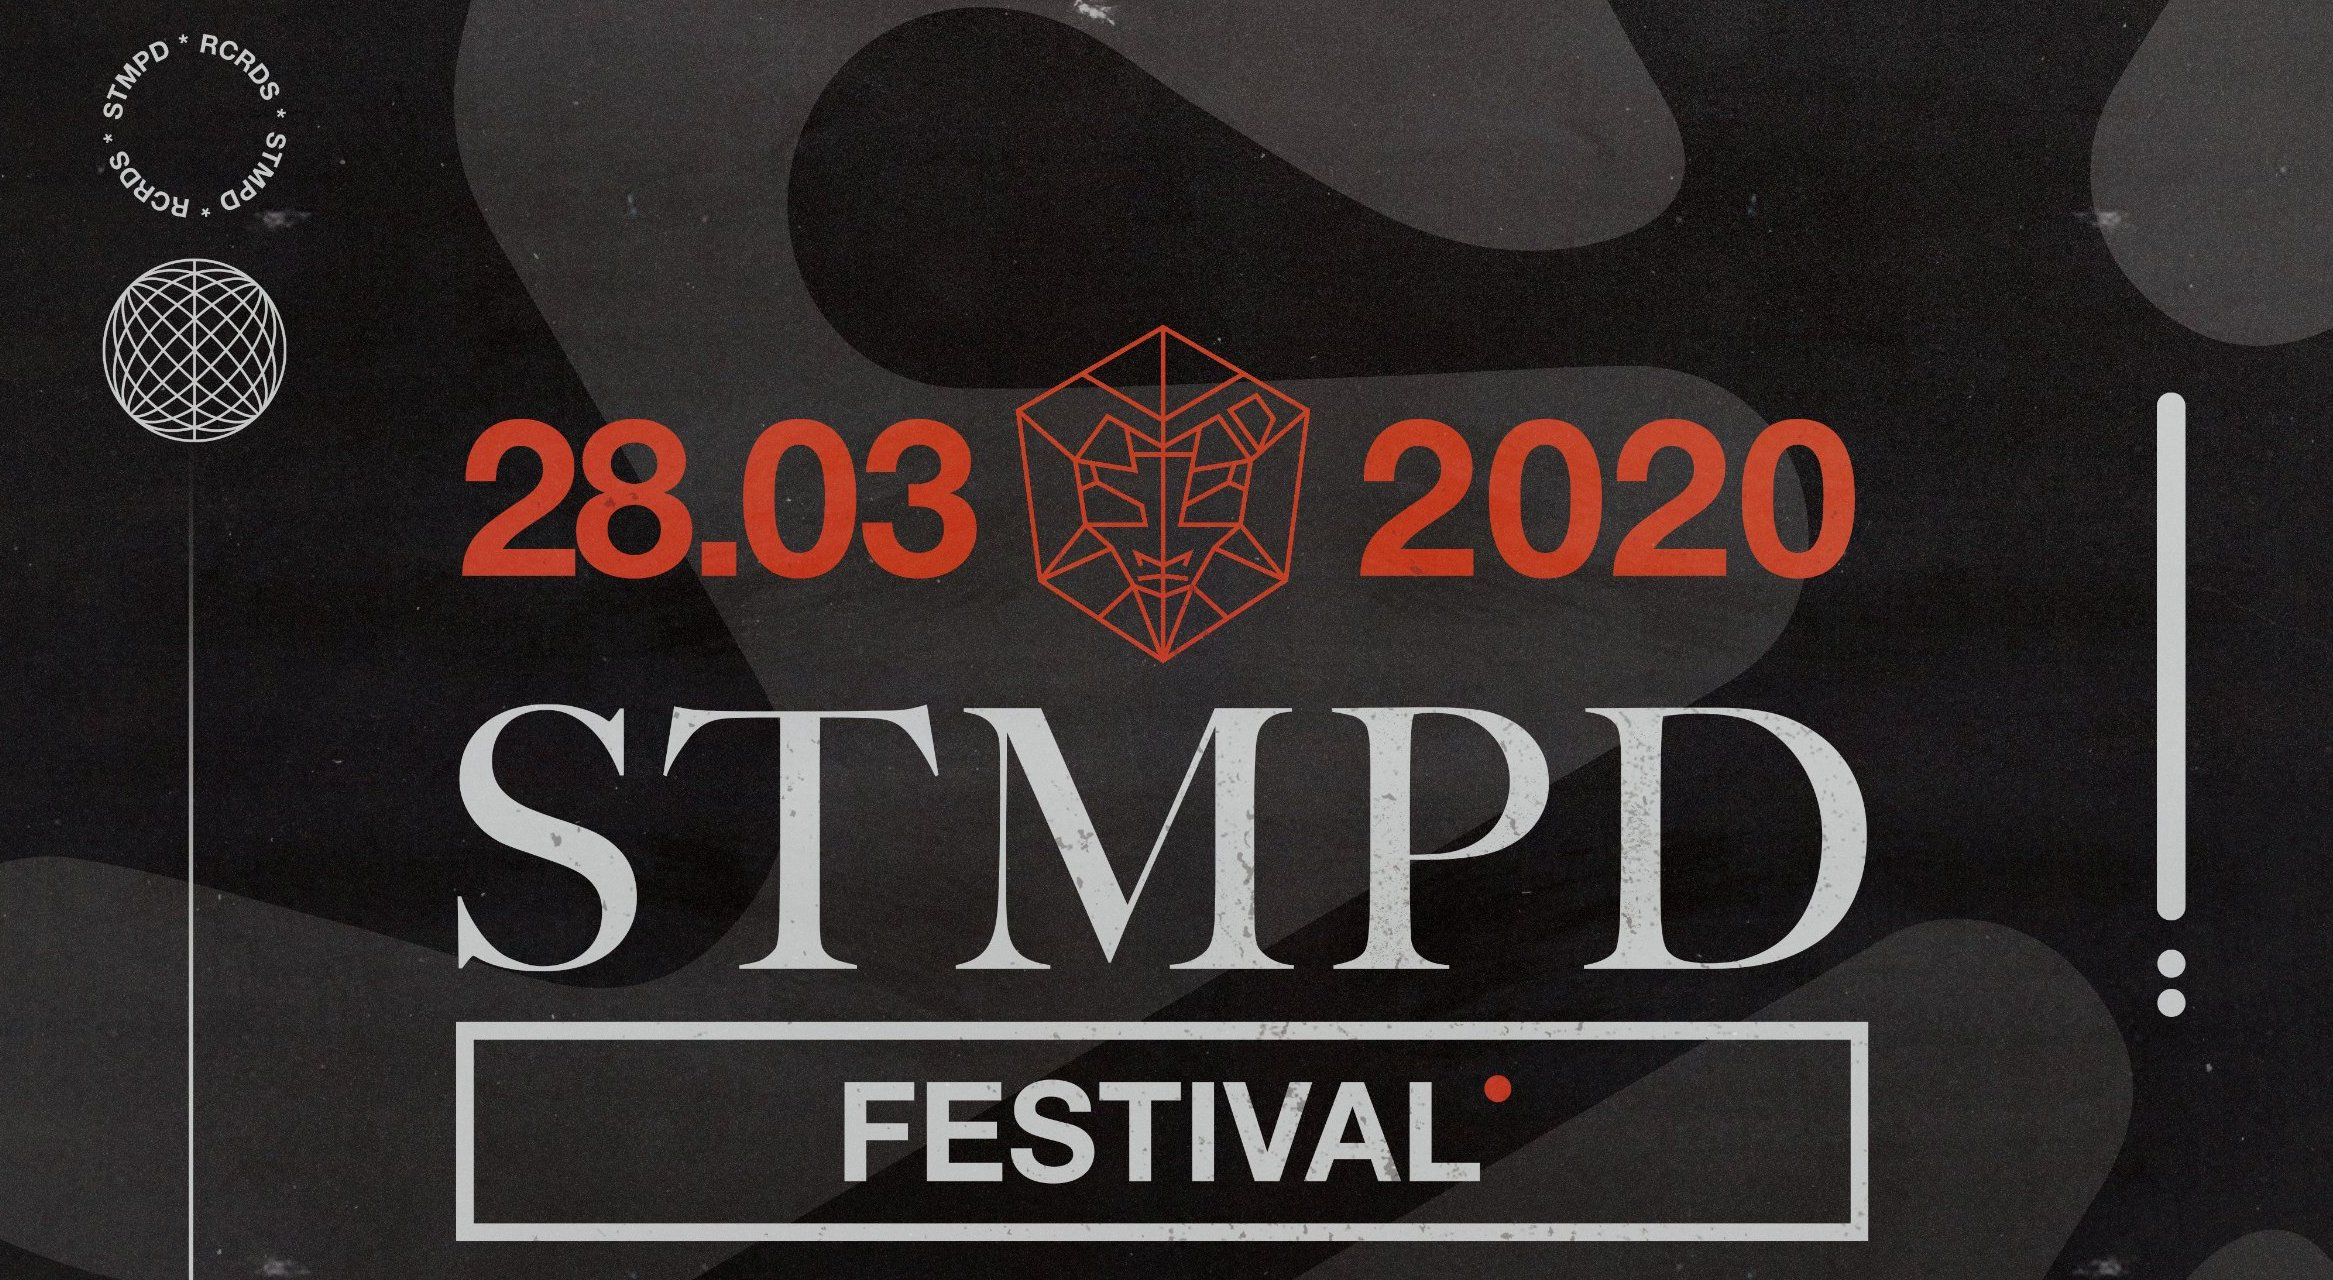 Martin Garrix's STMPD RCRDS to Host 24 Hour Livestream Festival